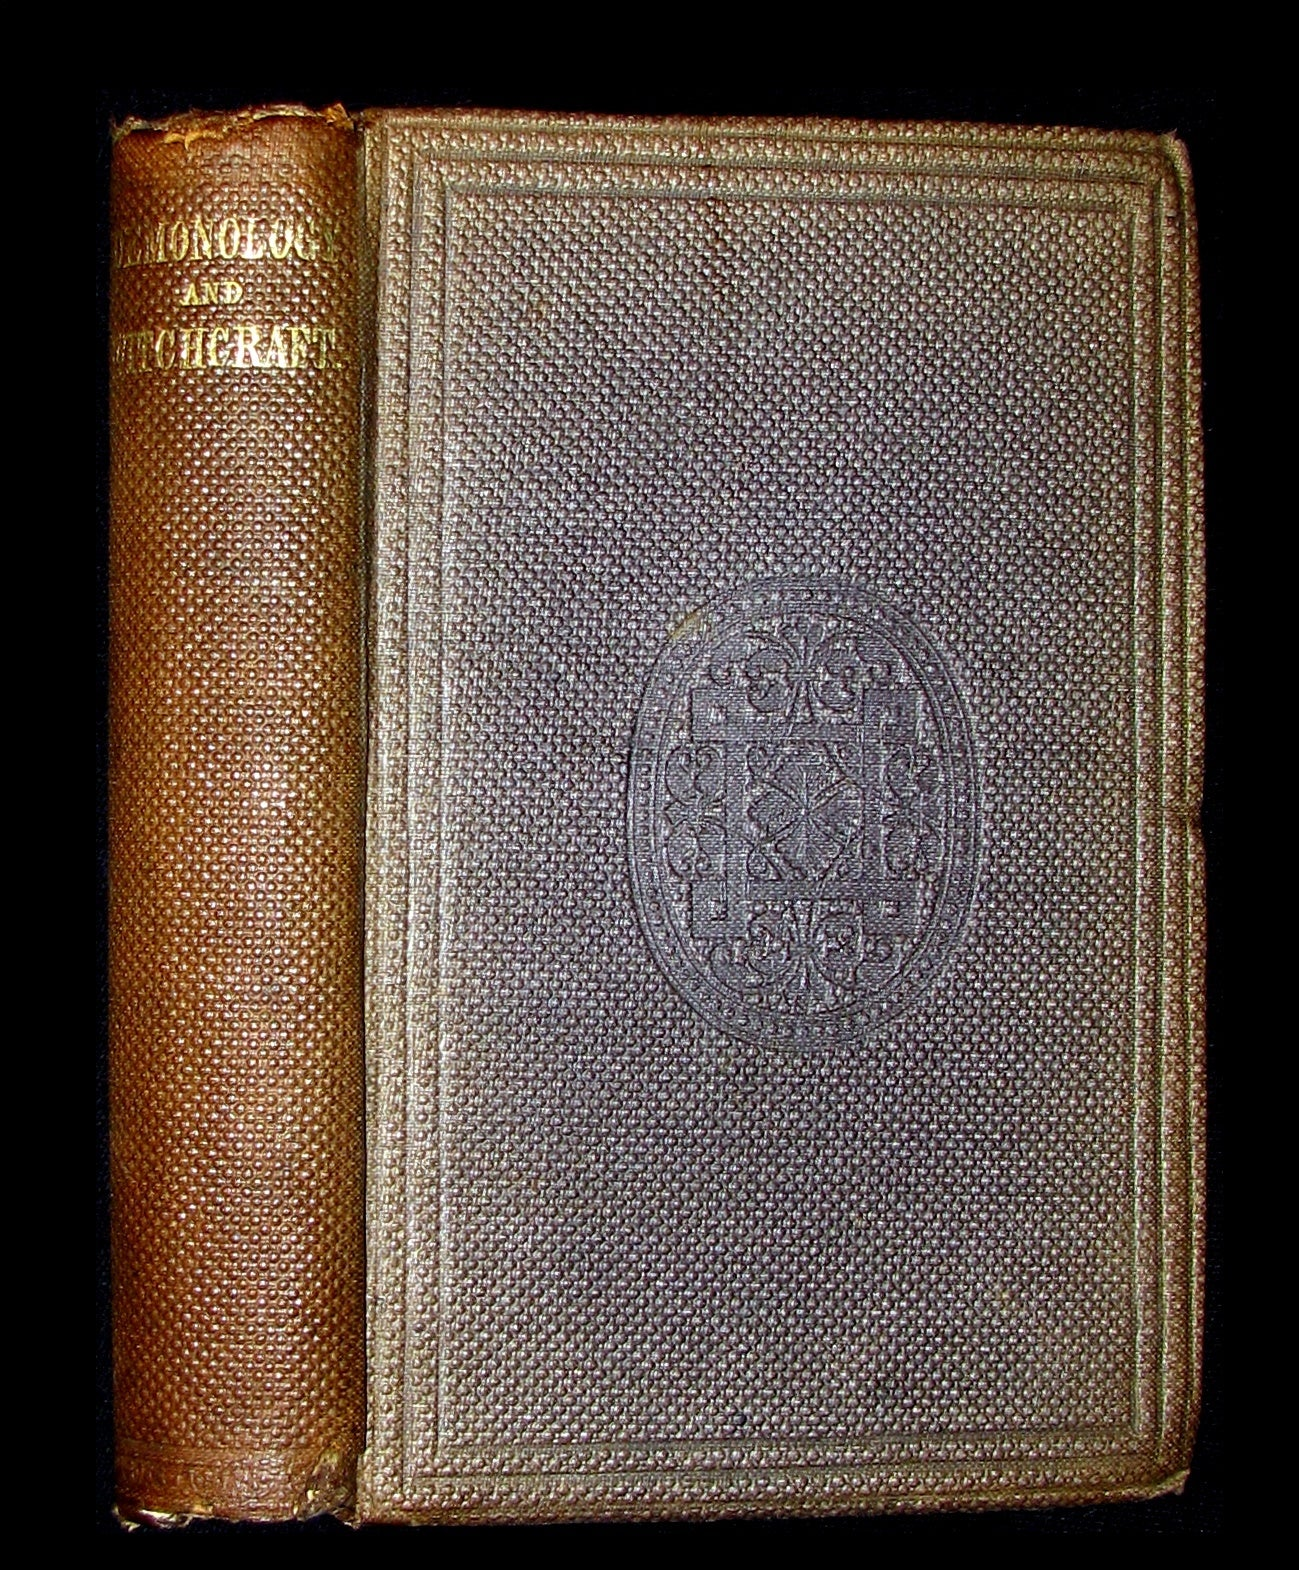 1831 Rare 2ndED Walter Scott - Letters on Demonology & Witchcraft - WITCHES & FAIRIES